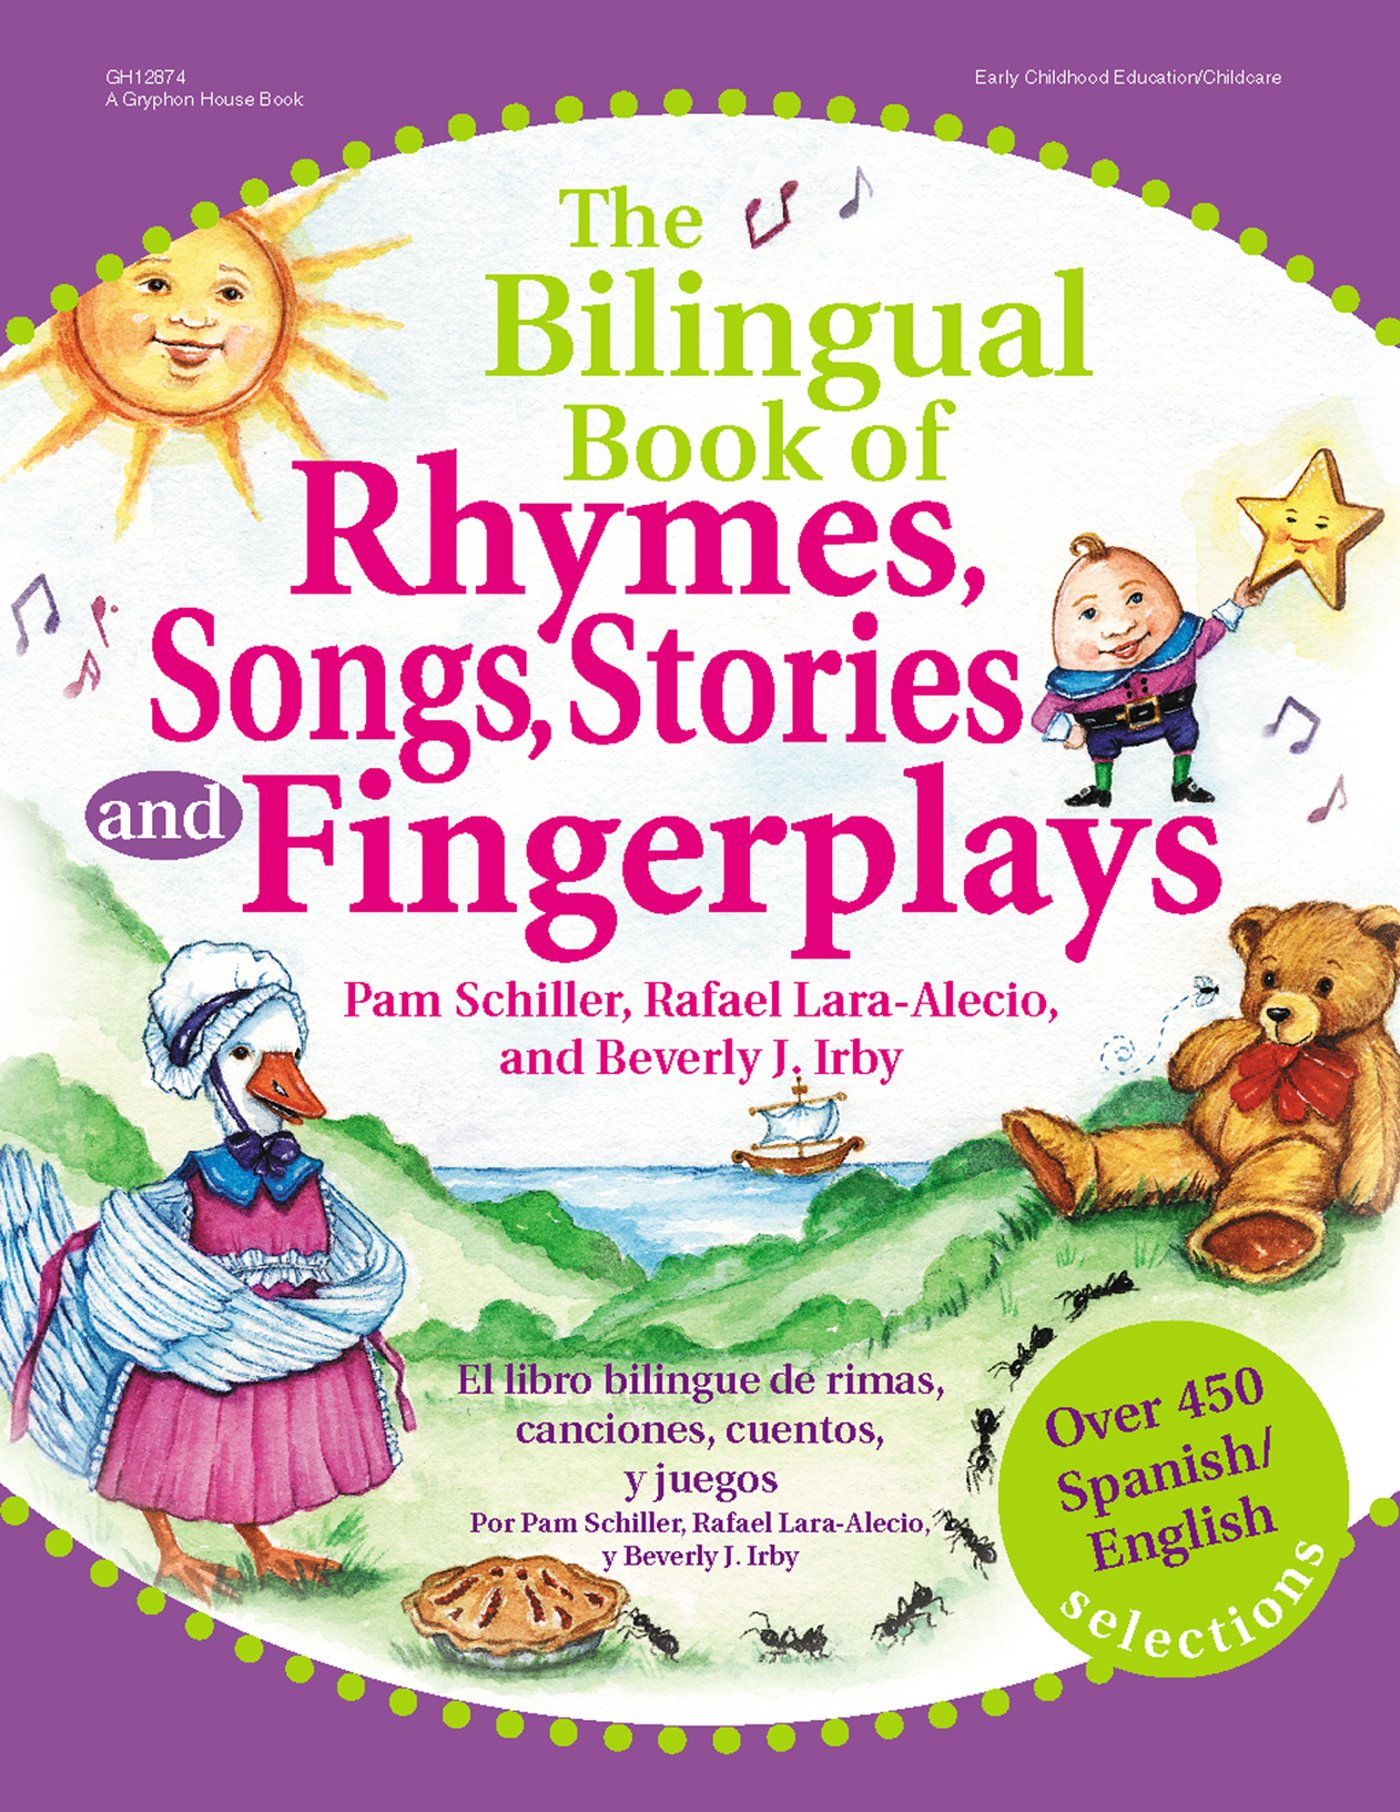 The Bilingual Book of Rhymes, Songs, Stories and Fingerplays: Over 450 Spanish/English Selections (English and Spanish Edition) by Gryphon House